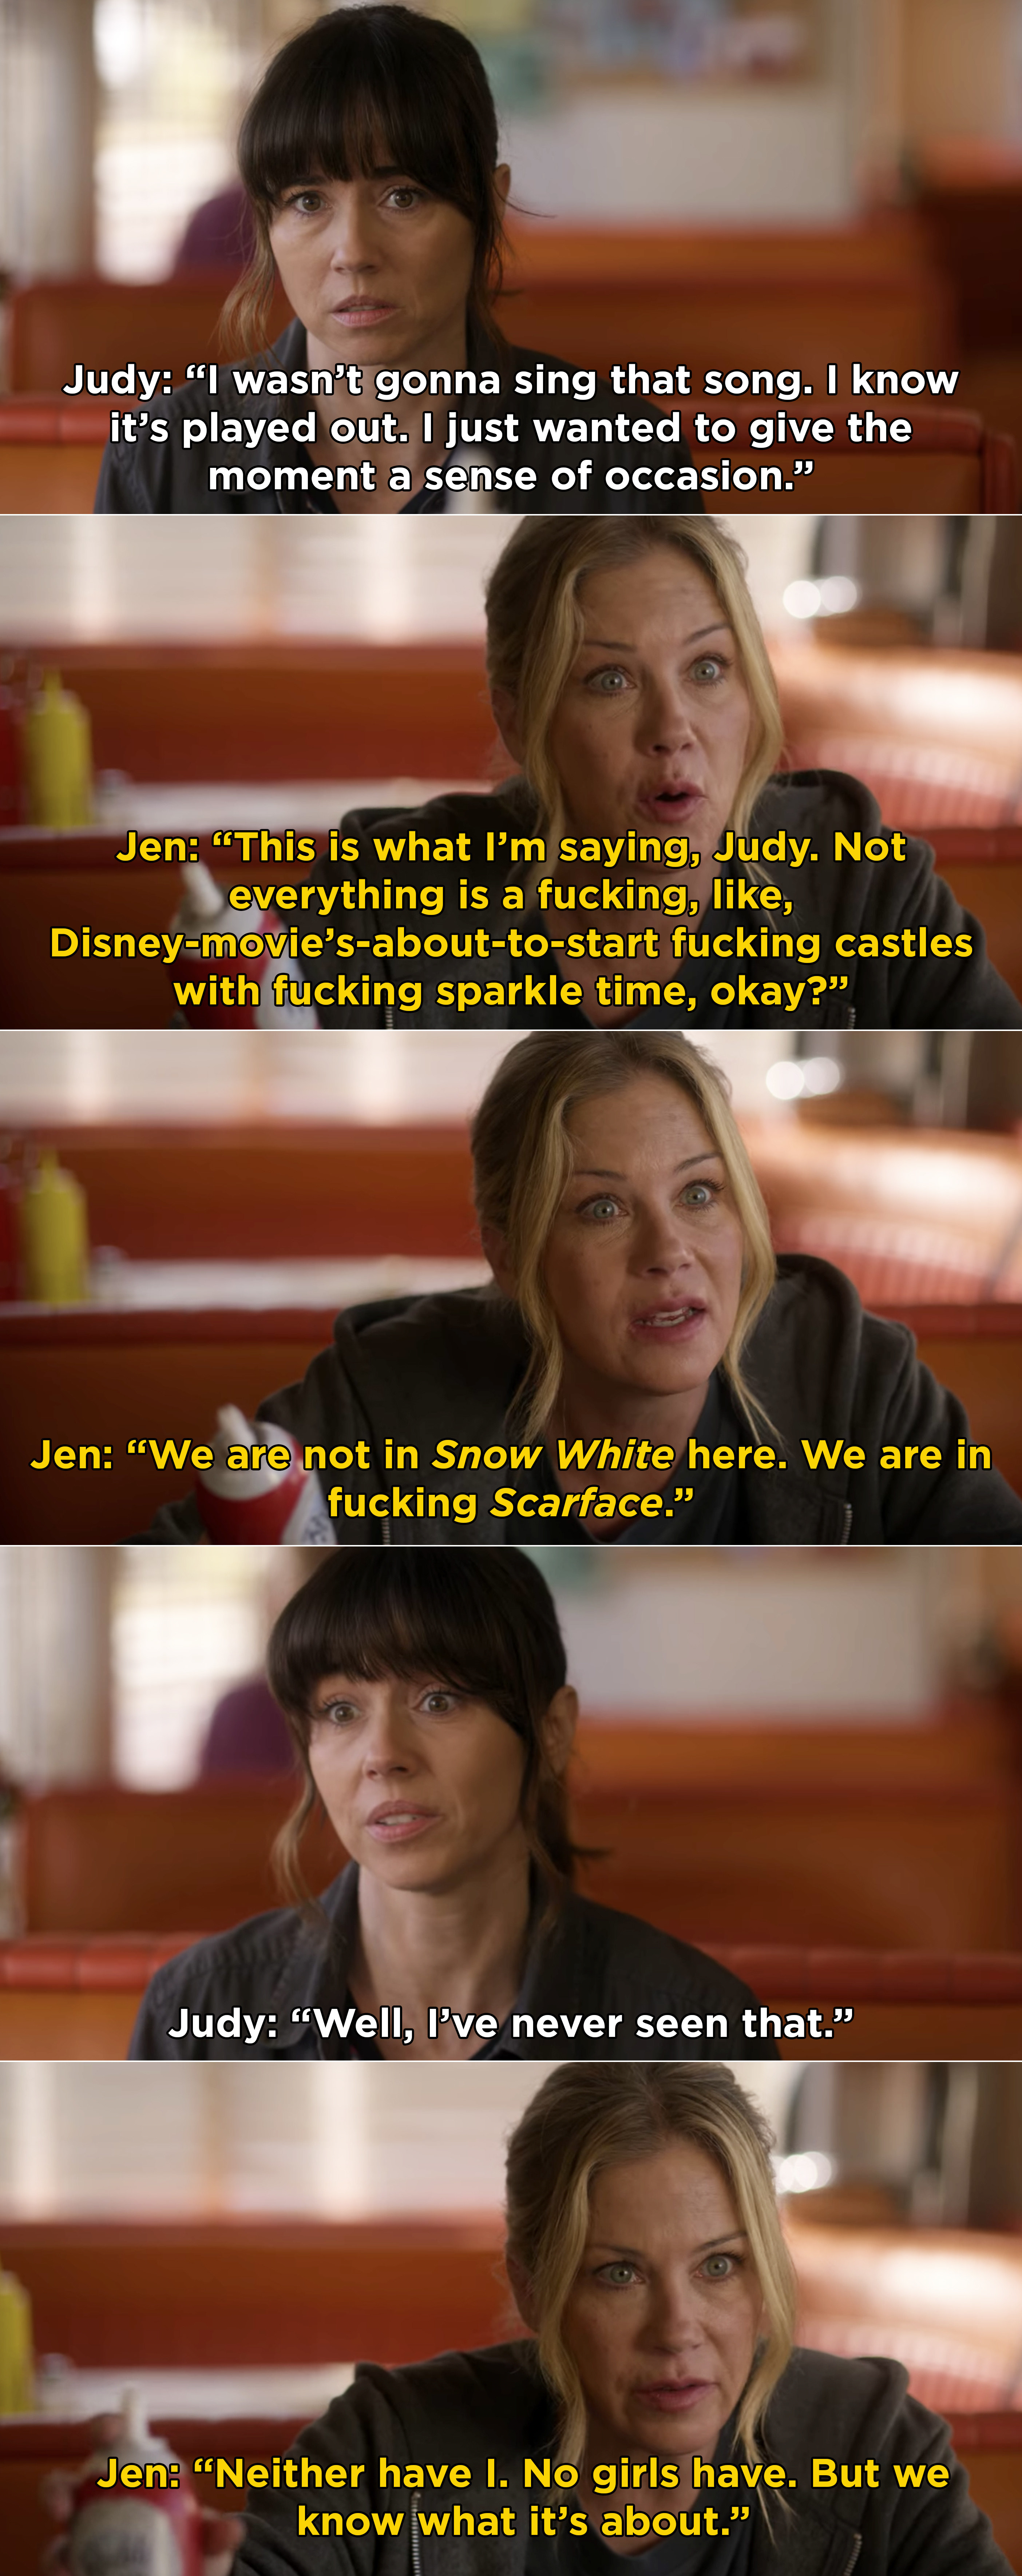 Judy and Jen talking in a diner after burying Steve's body in the woods, and Jen comparing the experience to Scarface